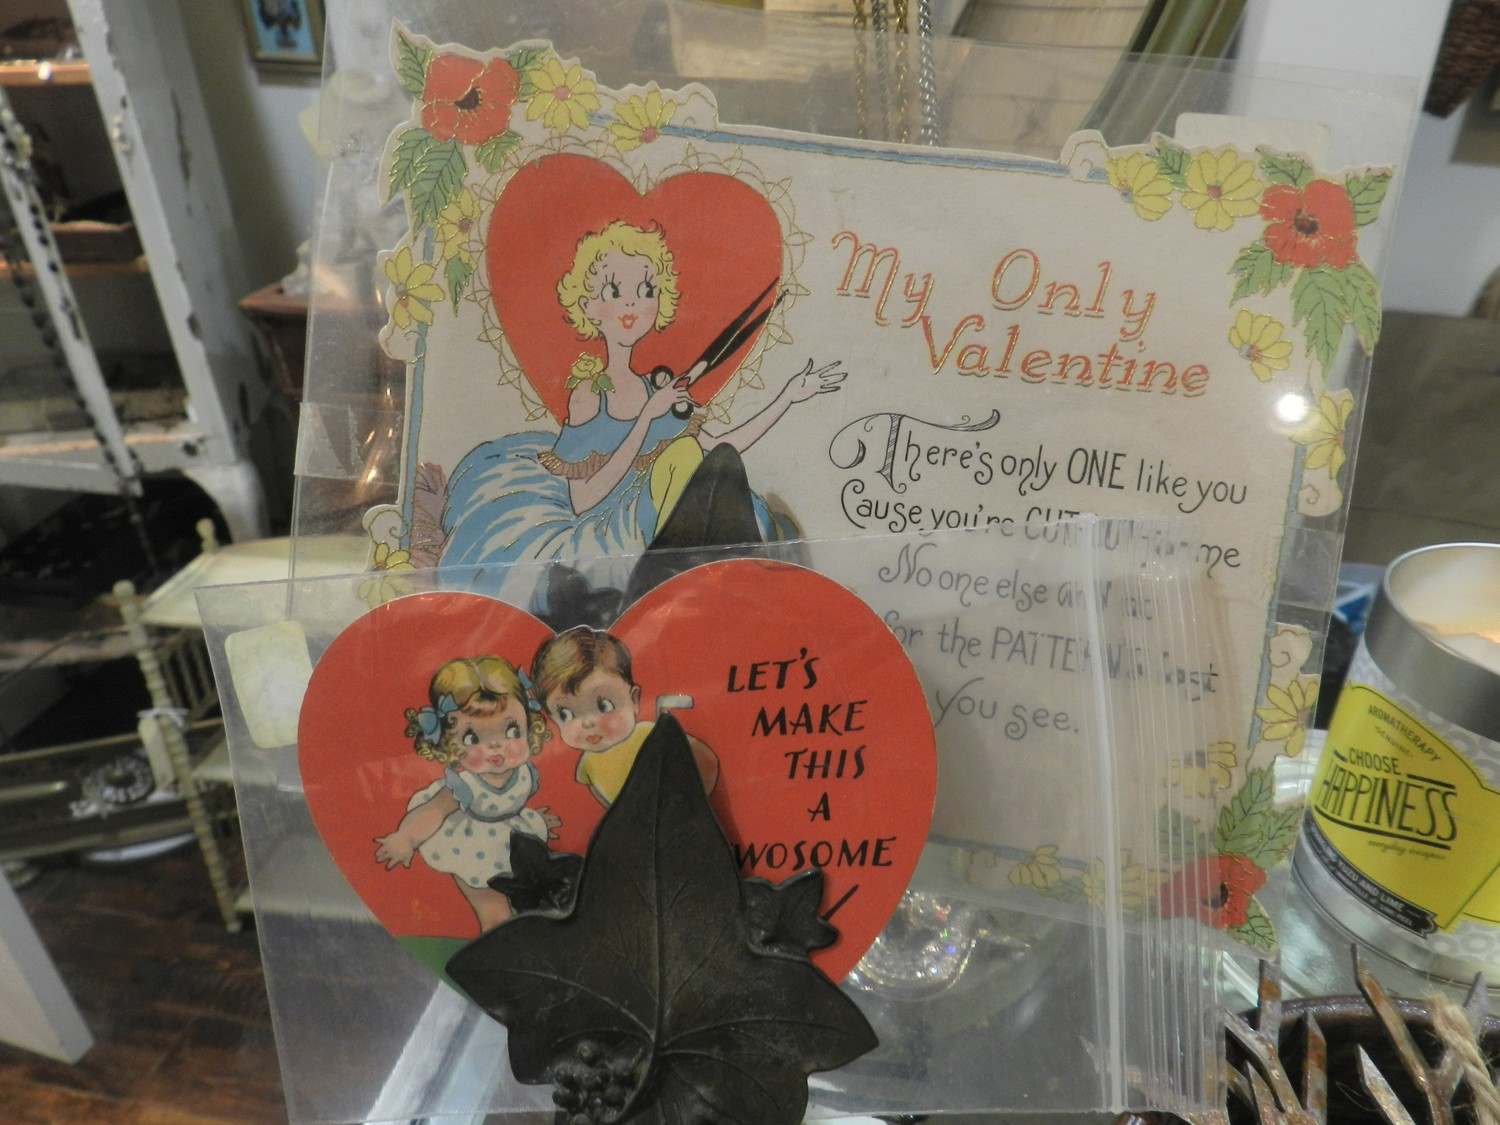 Instead of shopping at Hallmark, pick up a vintage card for your special valentine at Village Green Antiques.